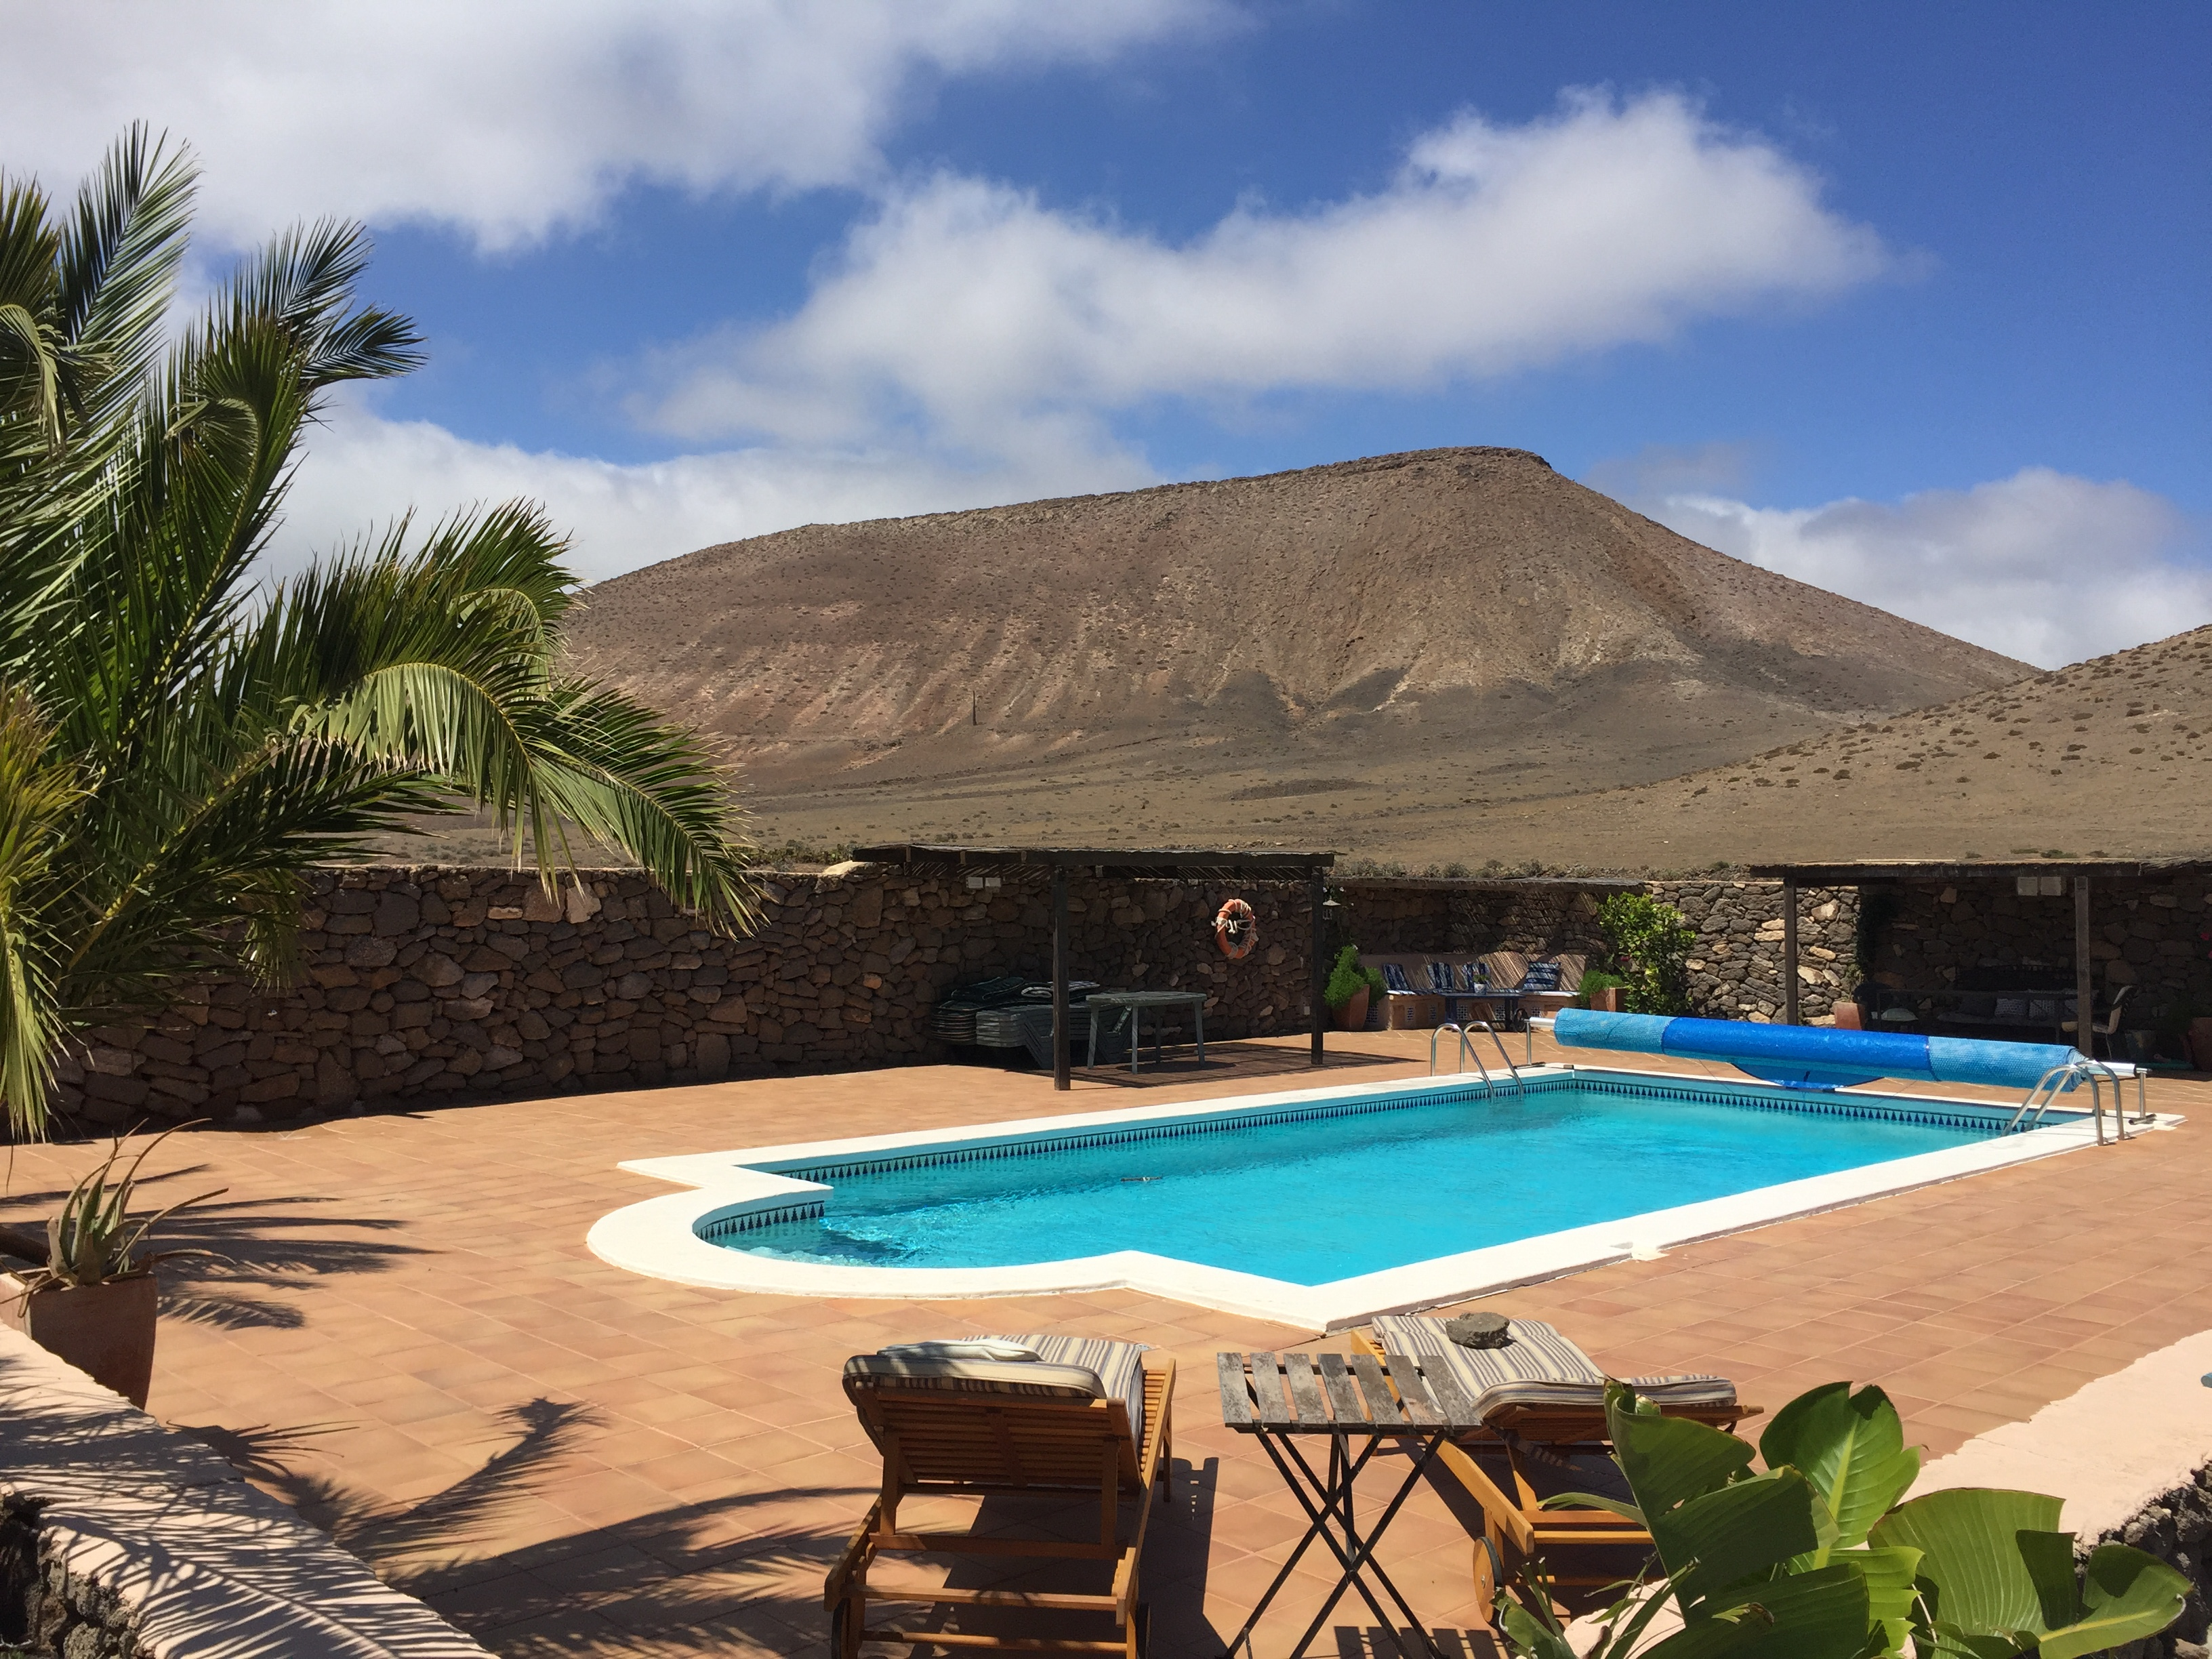 Ac modation Lanzarote Holiday Villas Villas to Rent in Lanzarote